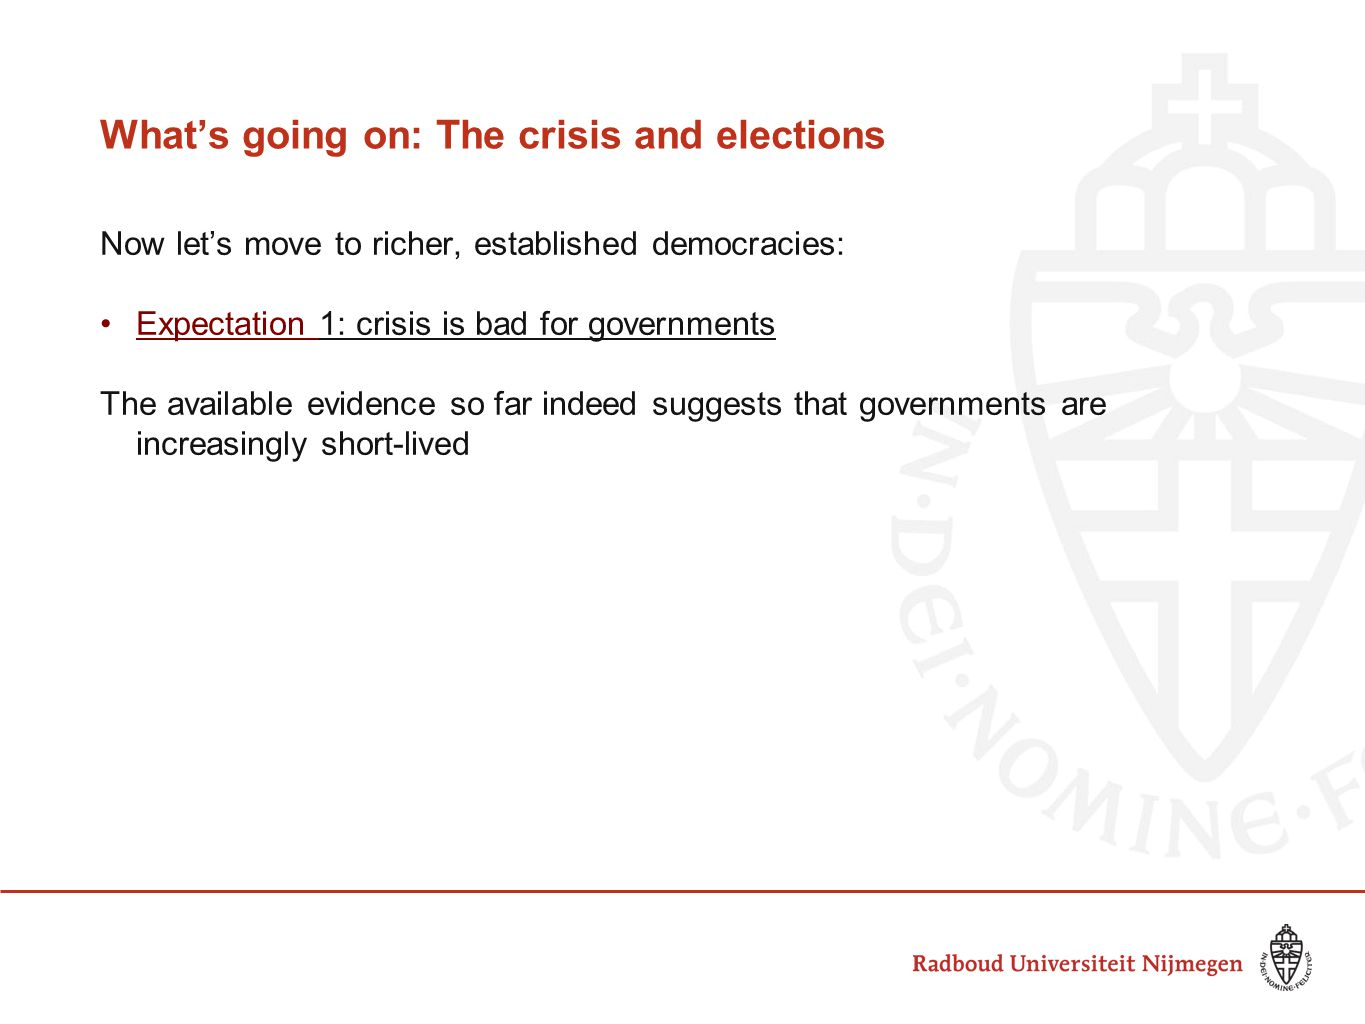 What's going on: The crisis and elections Now let's move to richer, established democracies: Expectation 1: crisis is bad for governments The available evidence so far indeed suggests that governments are increasingly short-lived